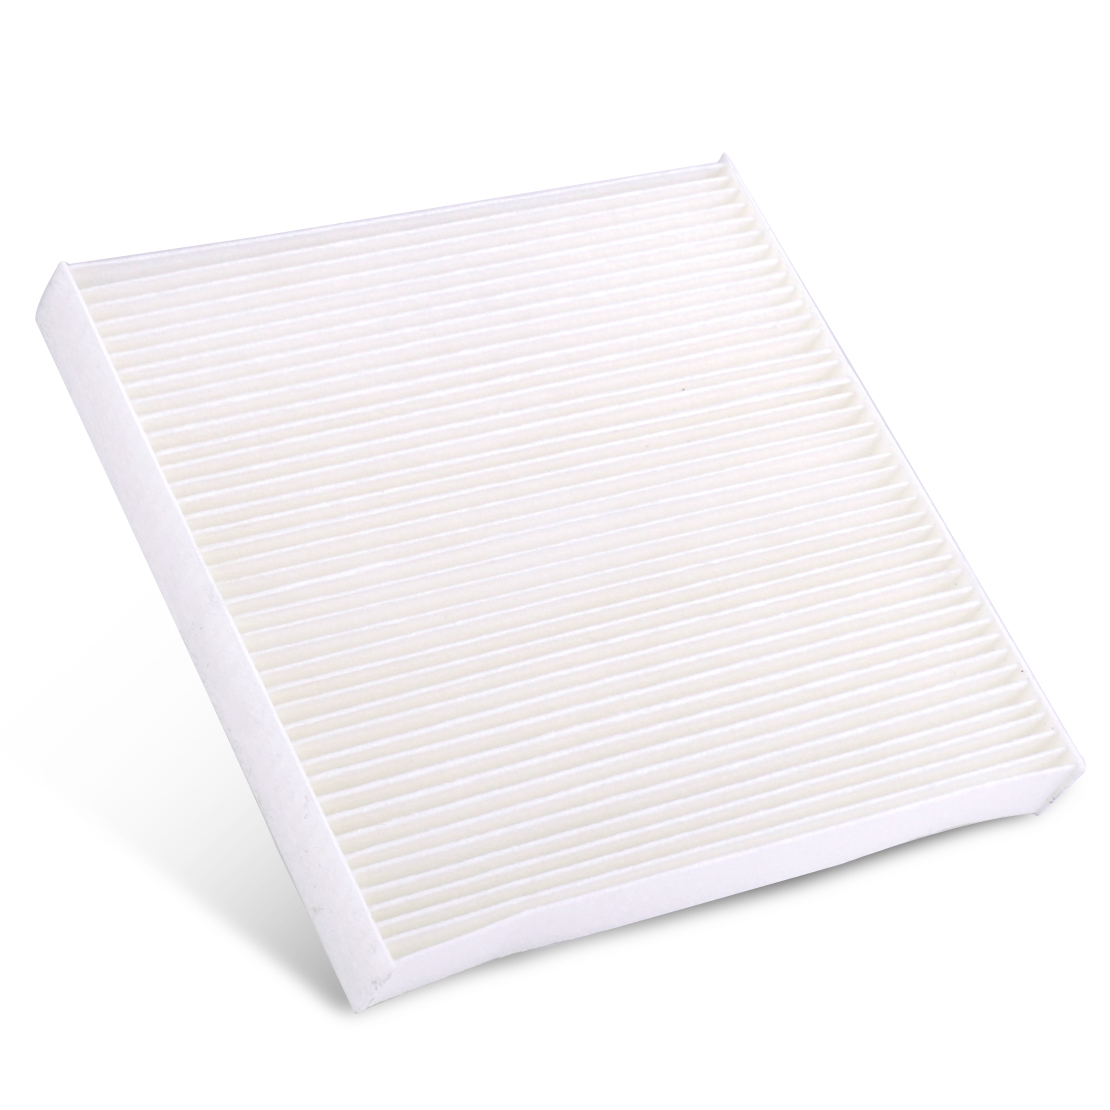 White Cabin Air Filter 80292-SDA-A01 fit for Acura Honda